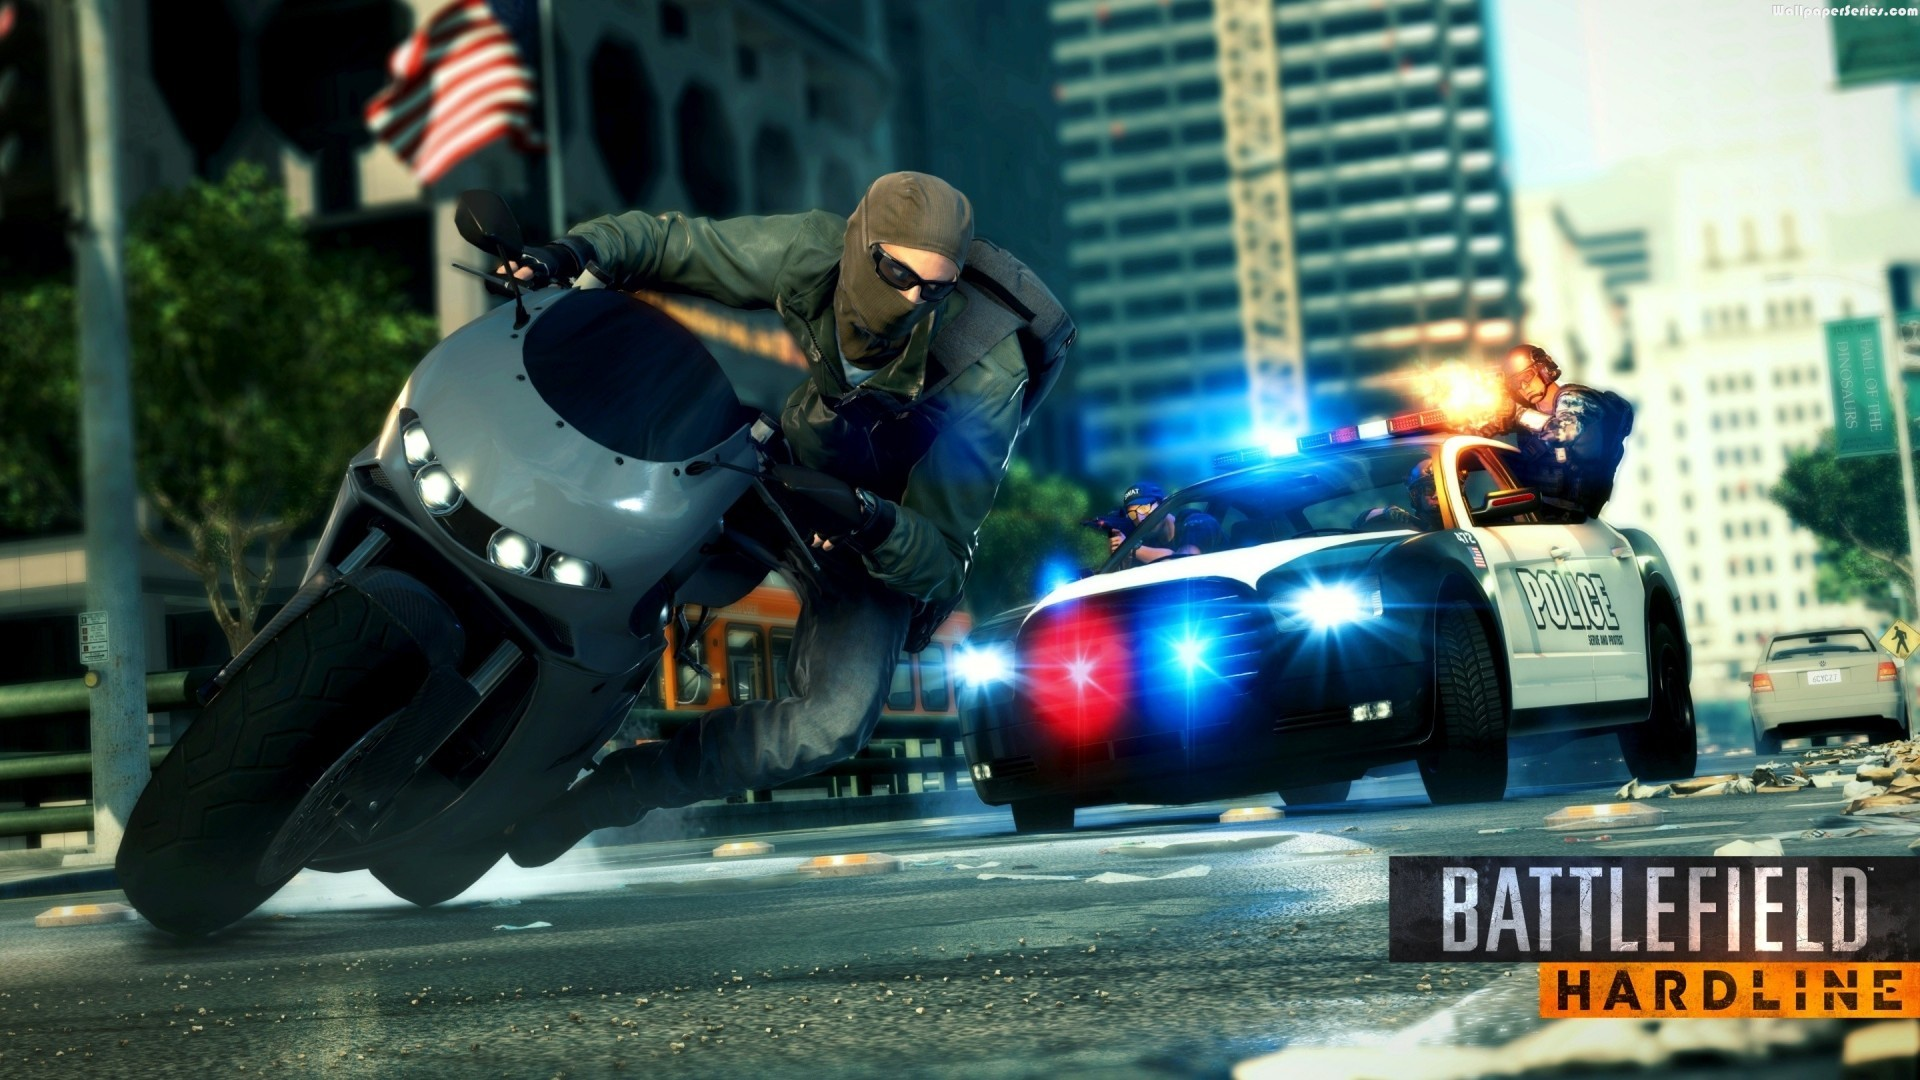 HardLine Game Police Car HD Wallpaper – Stylish HD Wallpapers .